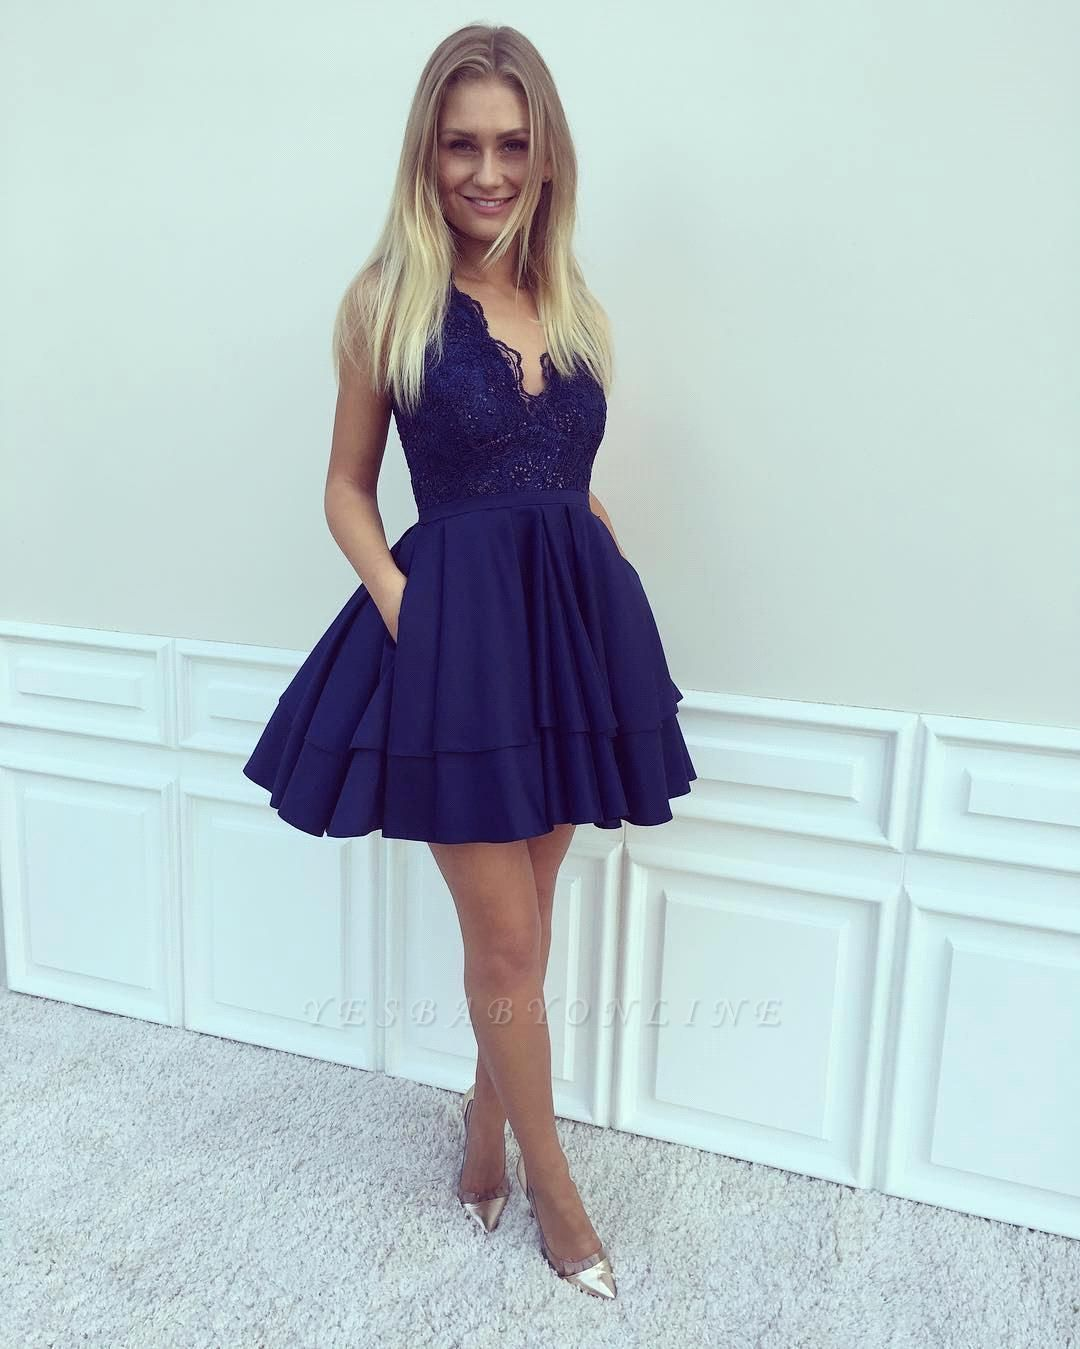 2019 Blue Homecoming Dresses V-Neck Sleeveless Layers Skirt with Pockets Cocktail Dress